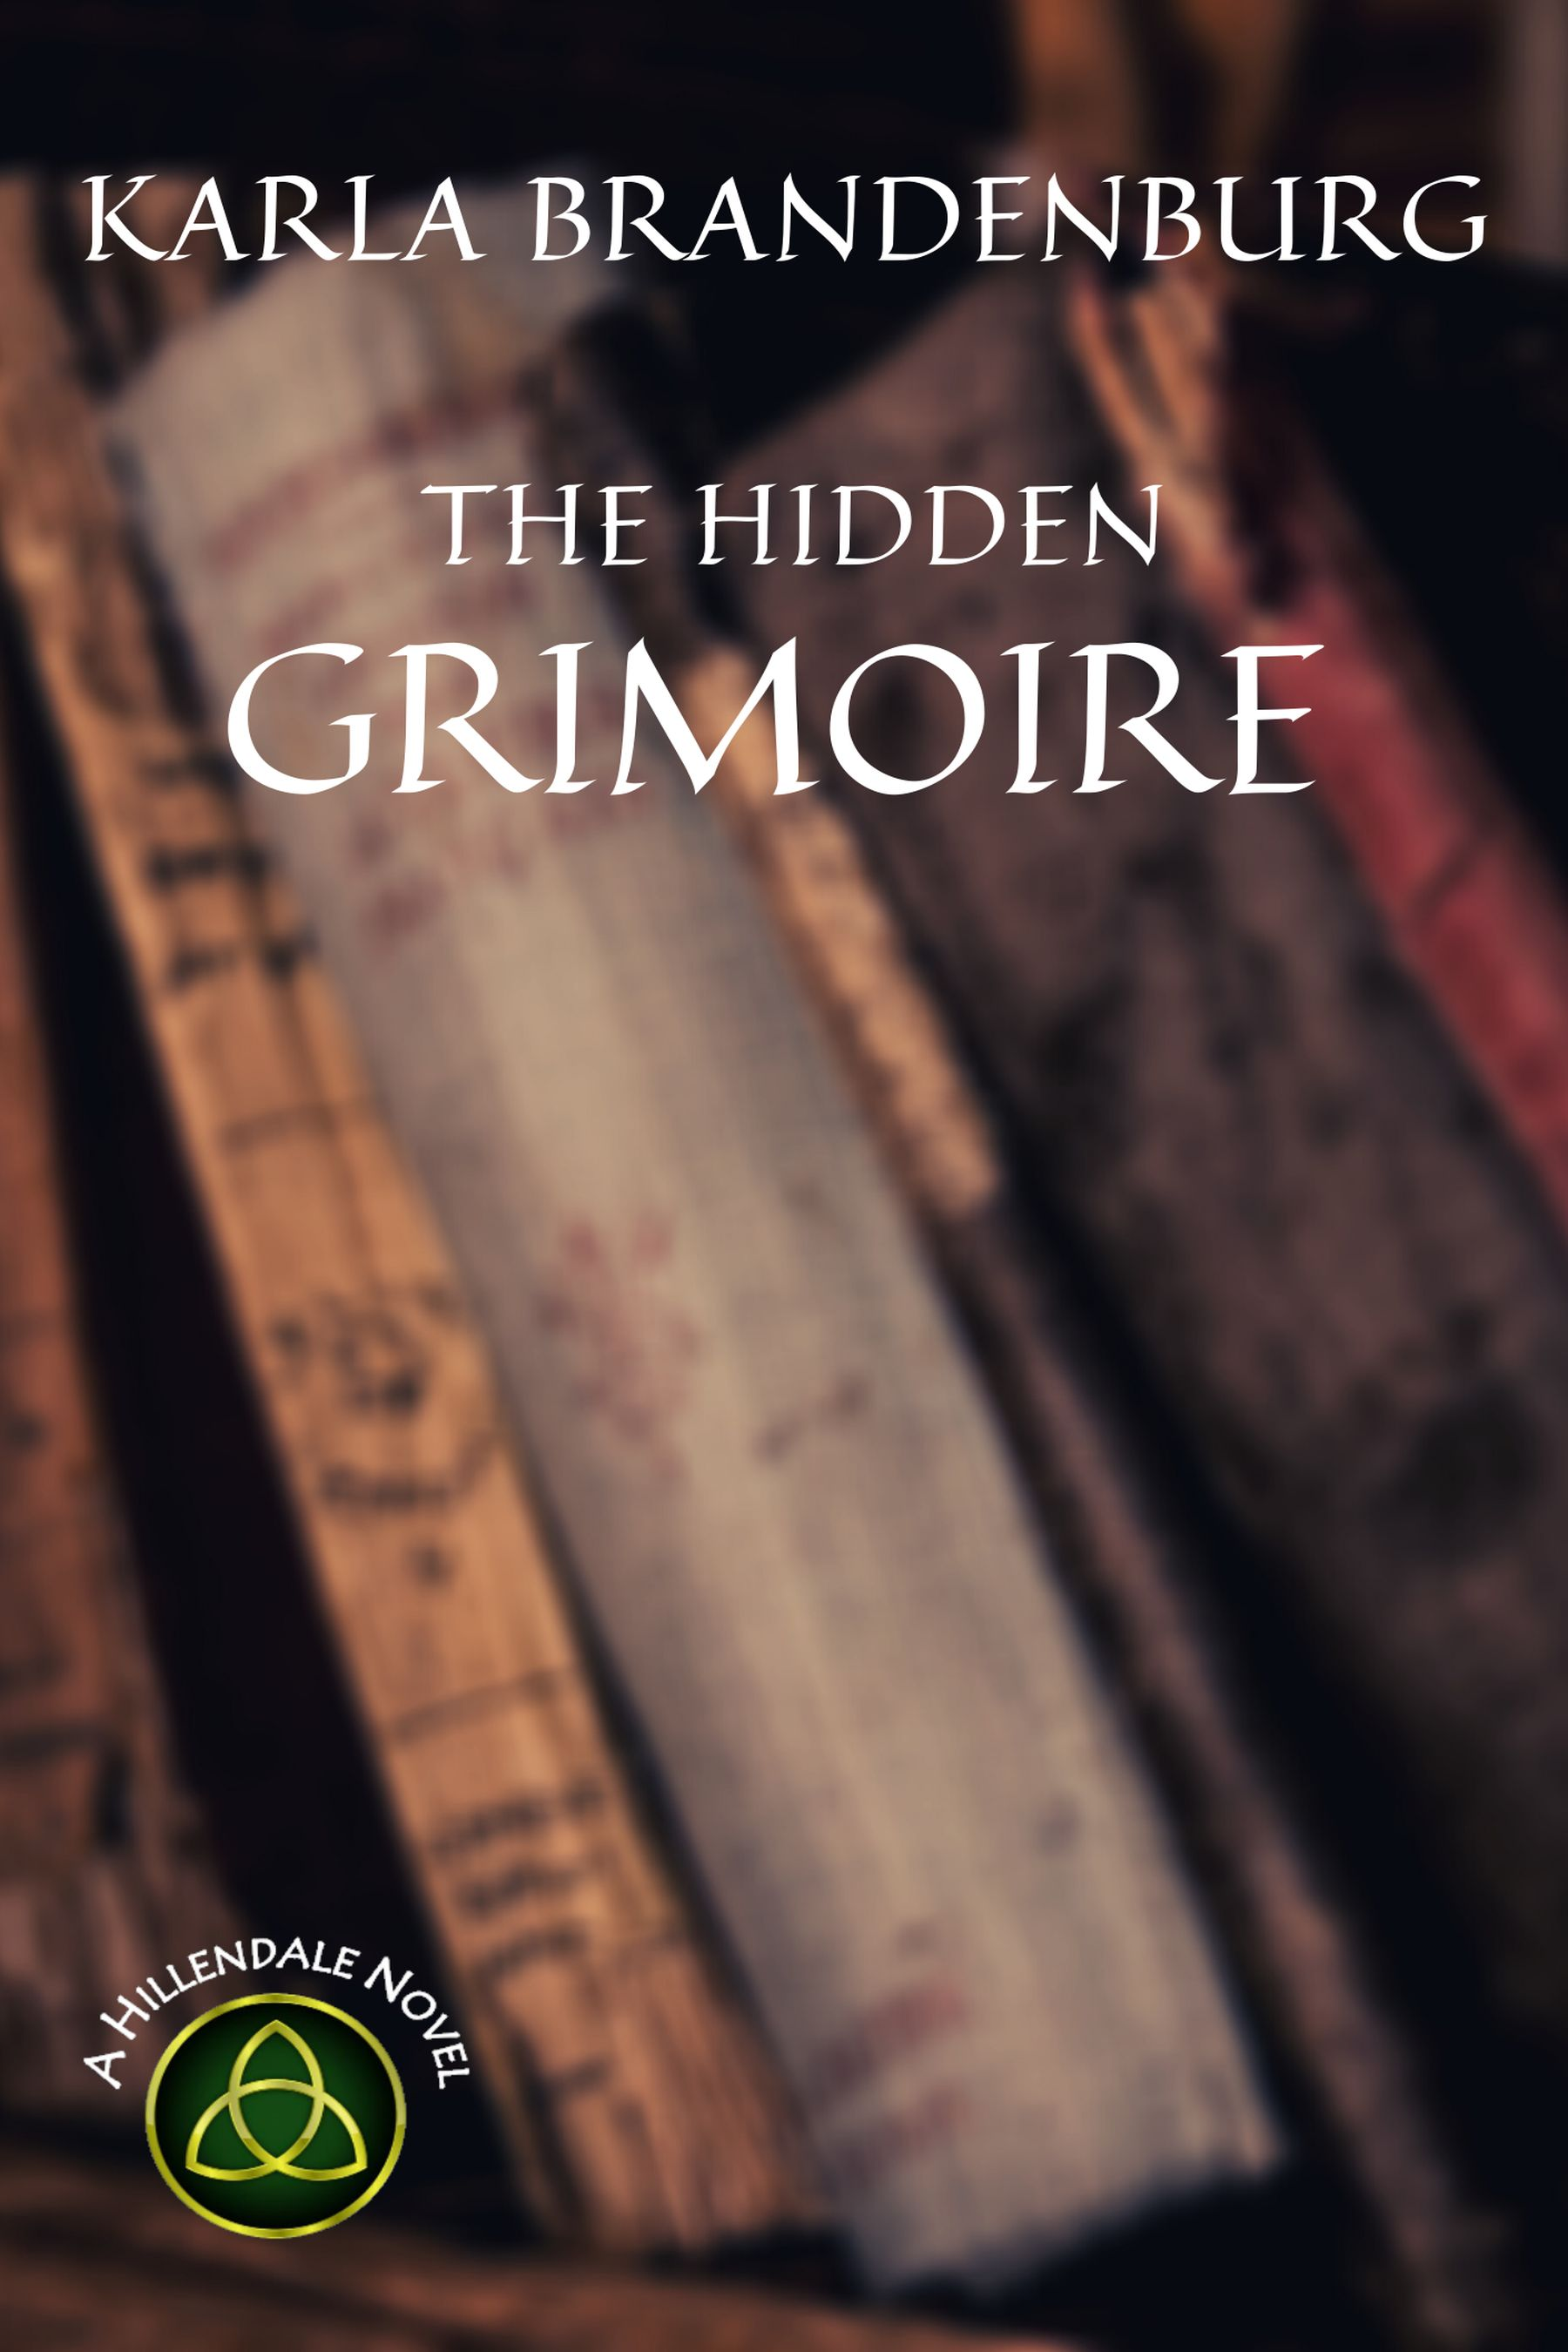 The Hidden Grimoire